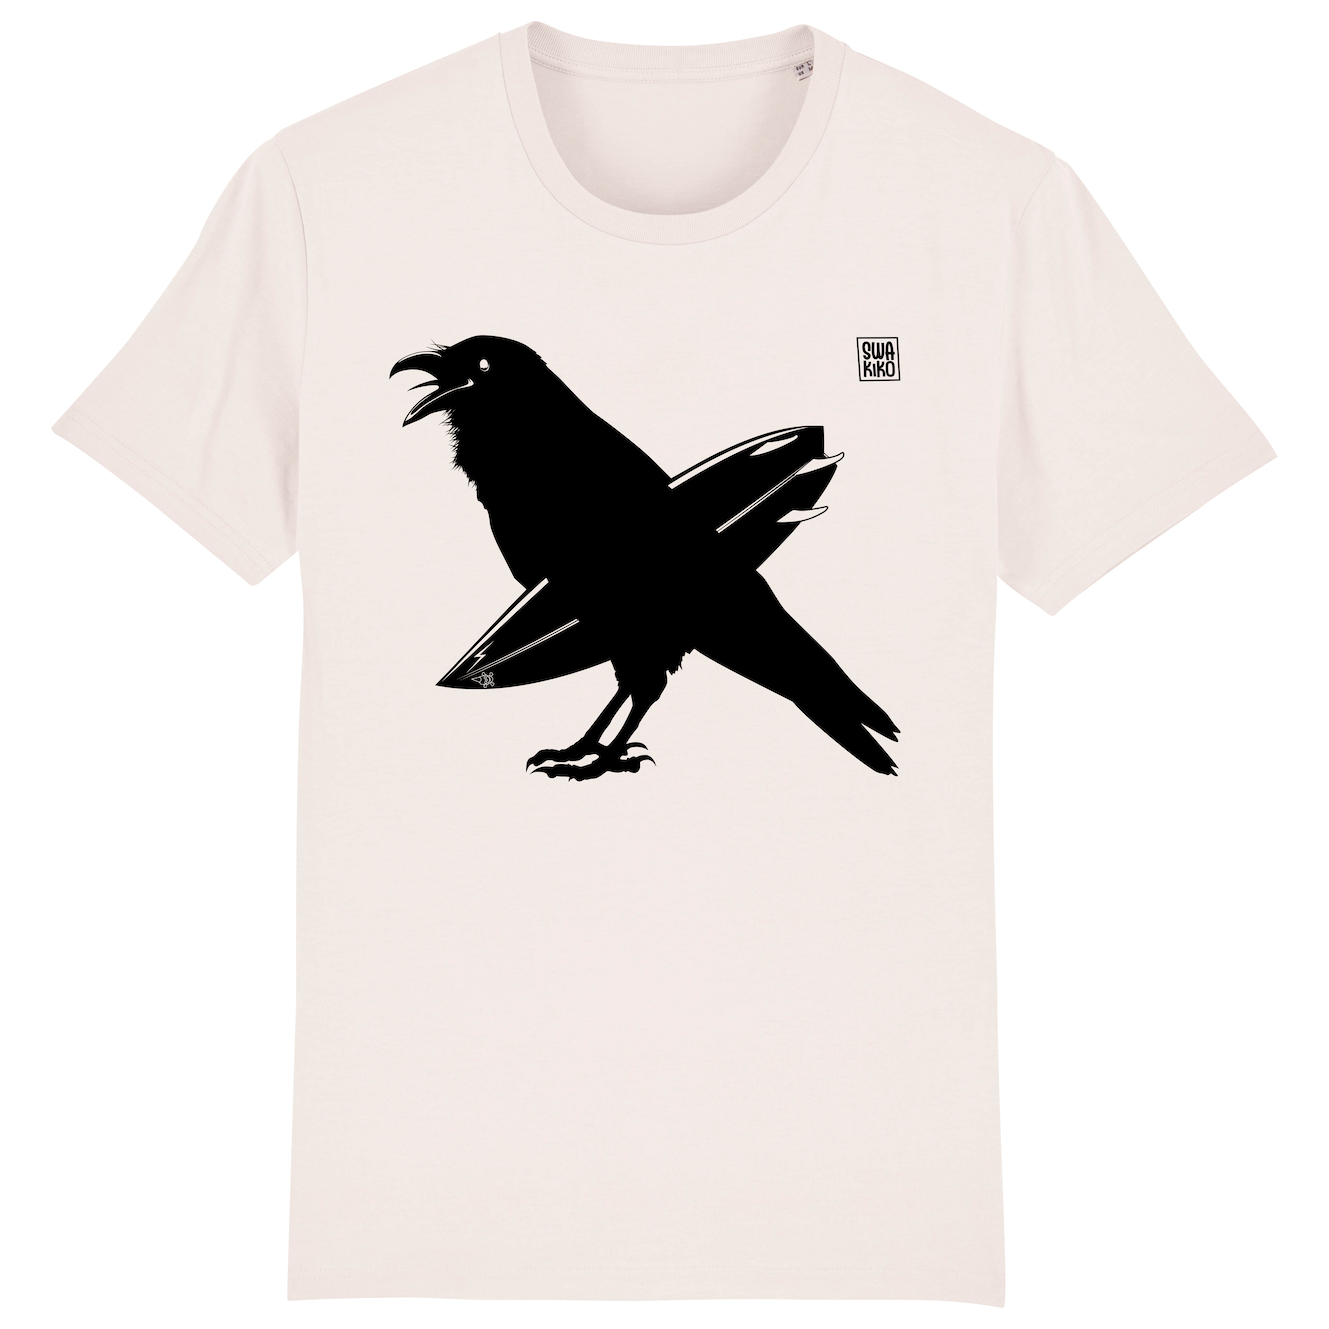 Surf t-shirt men white, The Snaking Crow